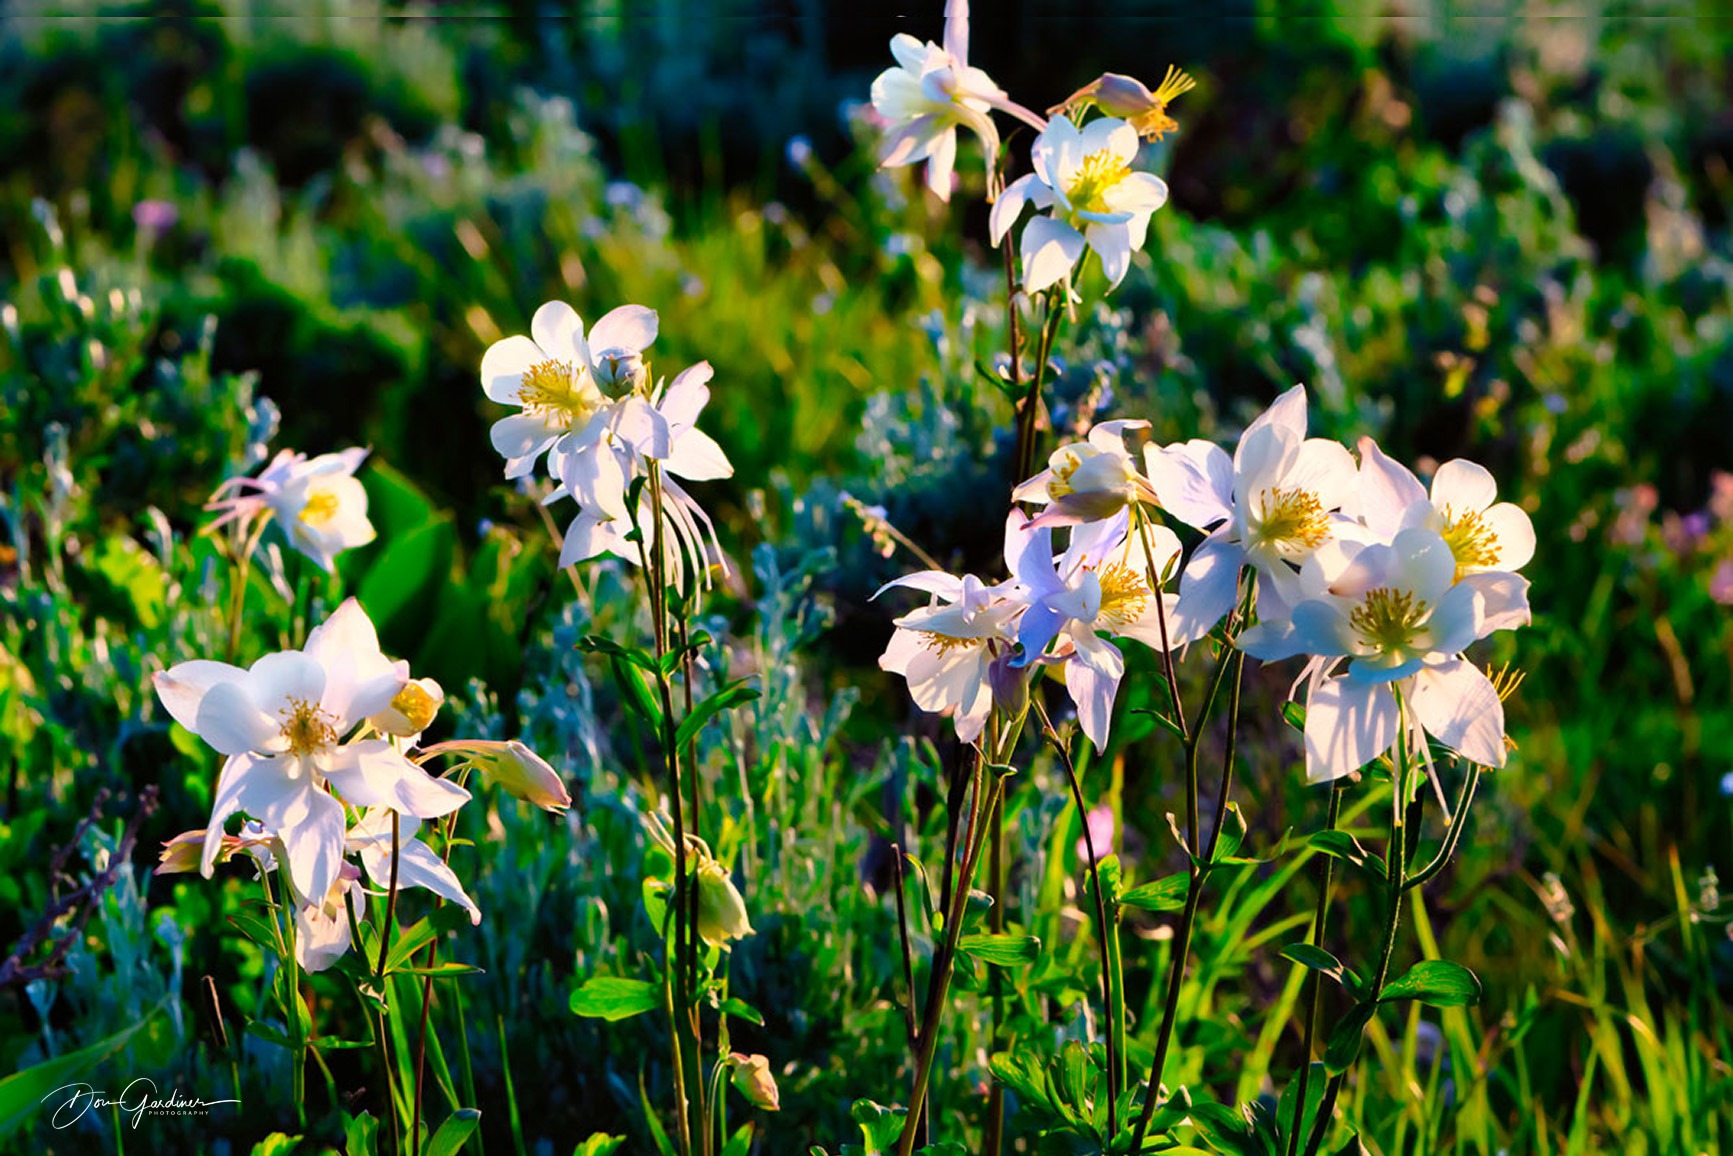 DSC3535-Columbine-Group-1-web